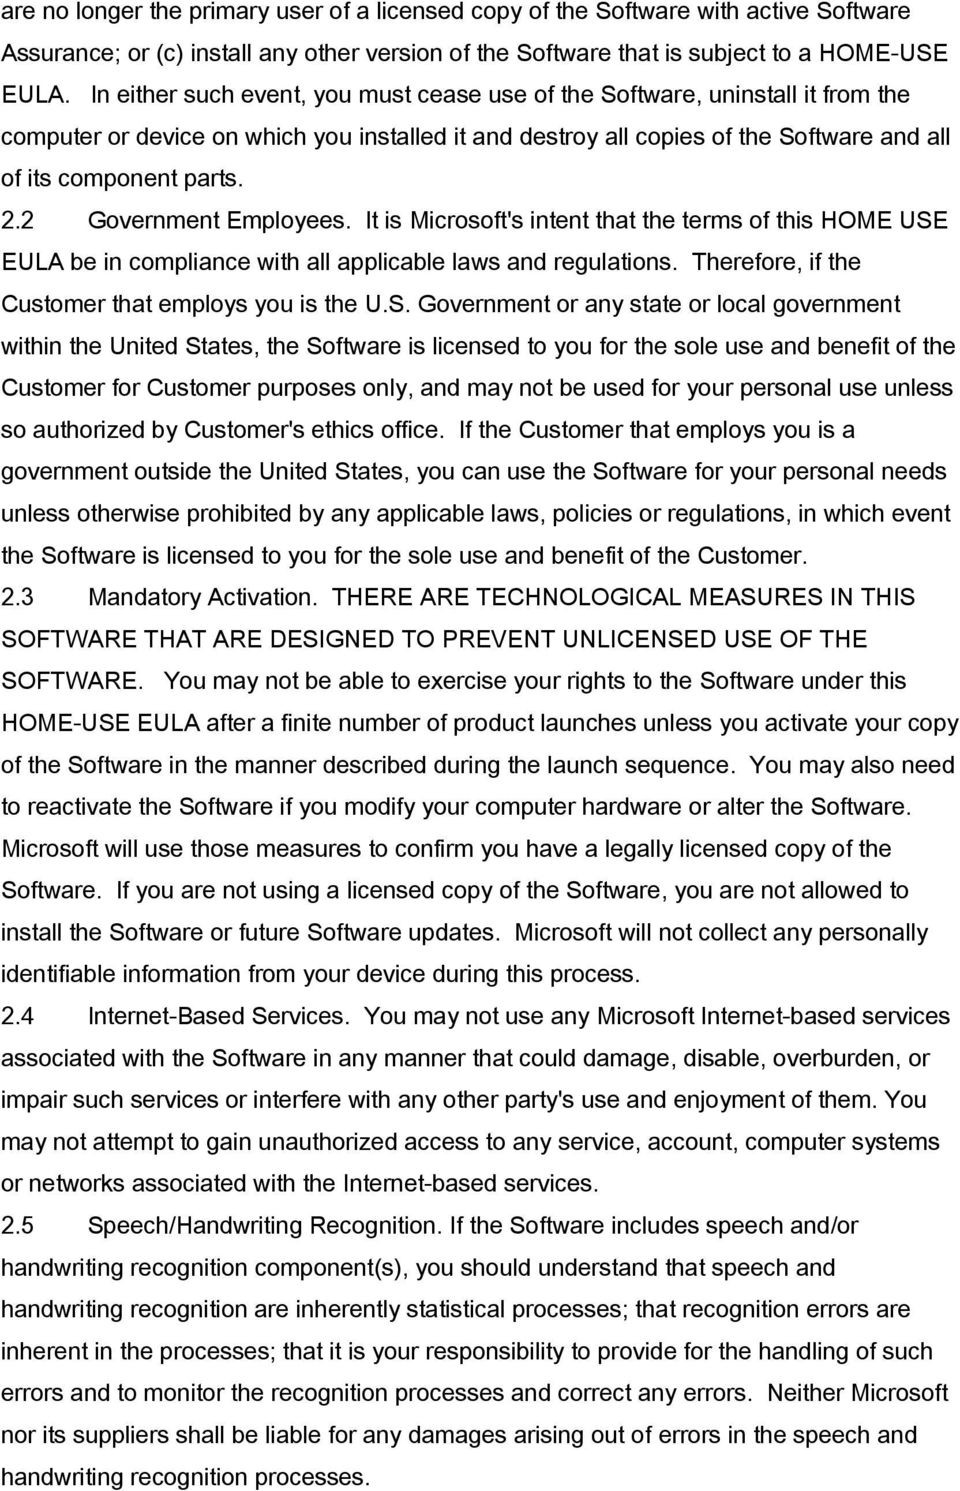 2 Government Employees. It is Microsoft's intent that the terms of this HOME USE